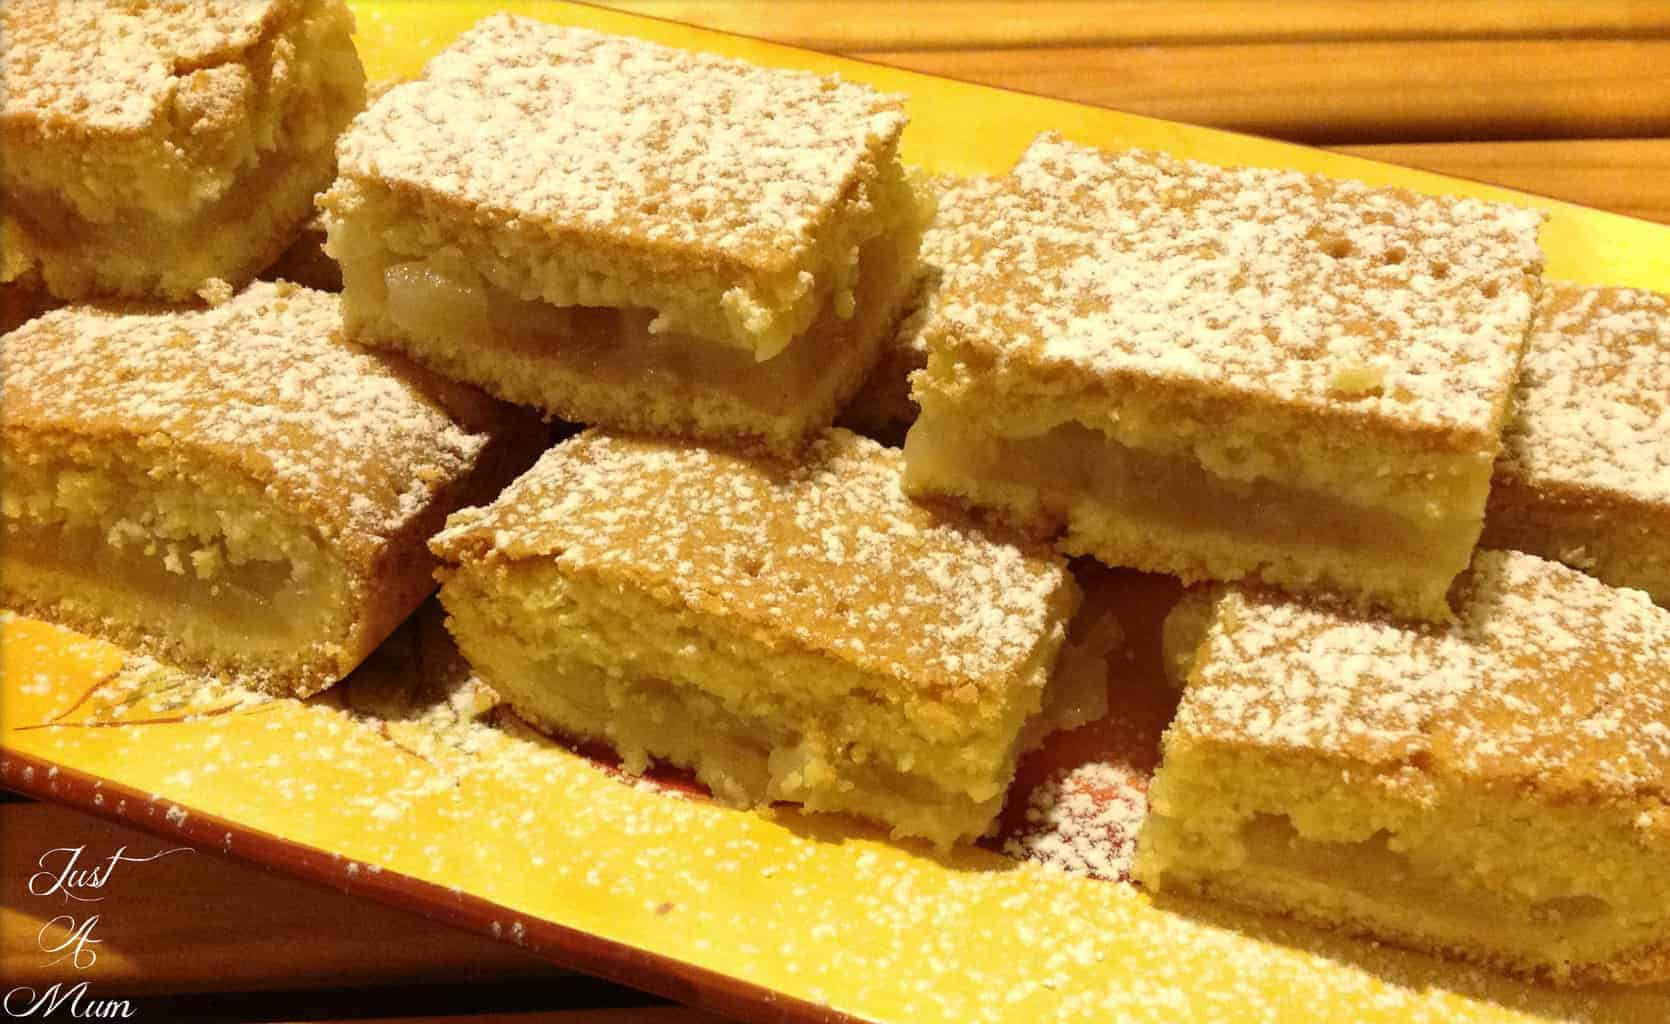 Just A Mum's Grandma's Apple Shortcake